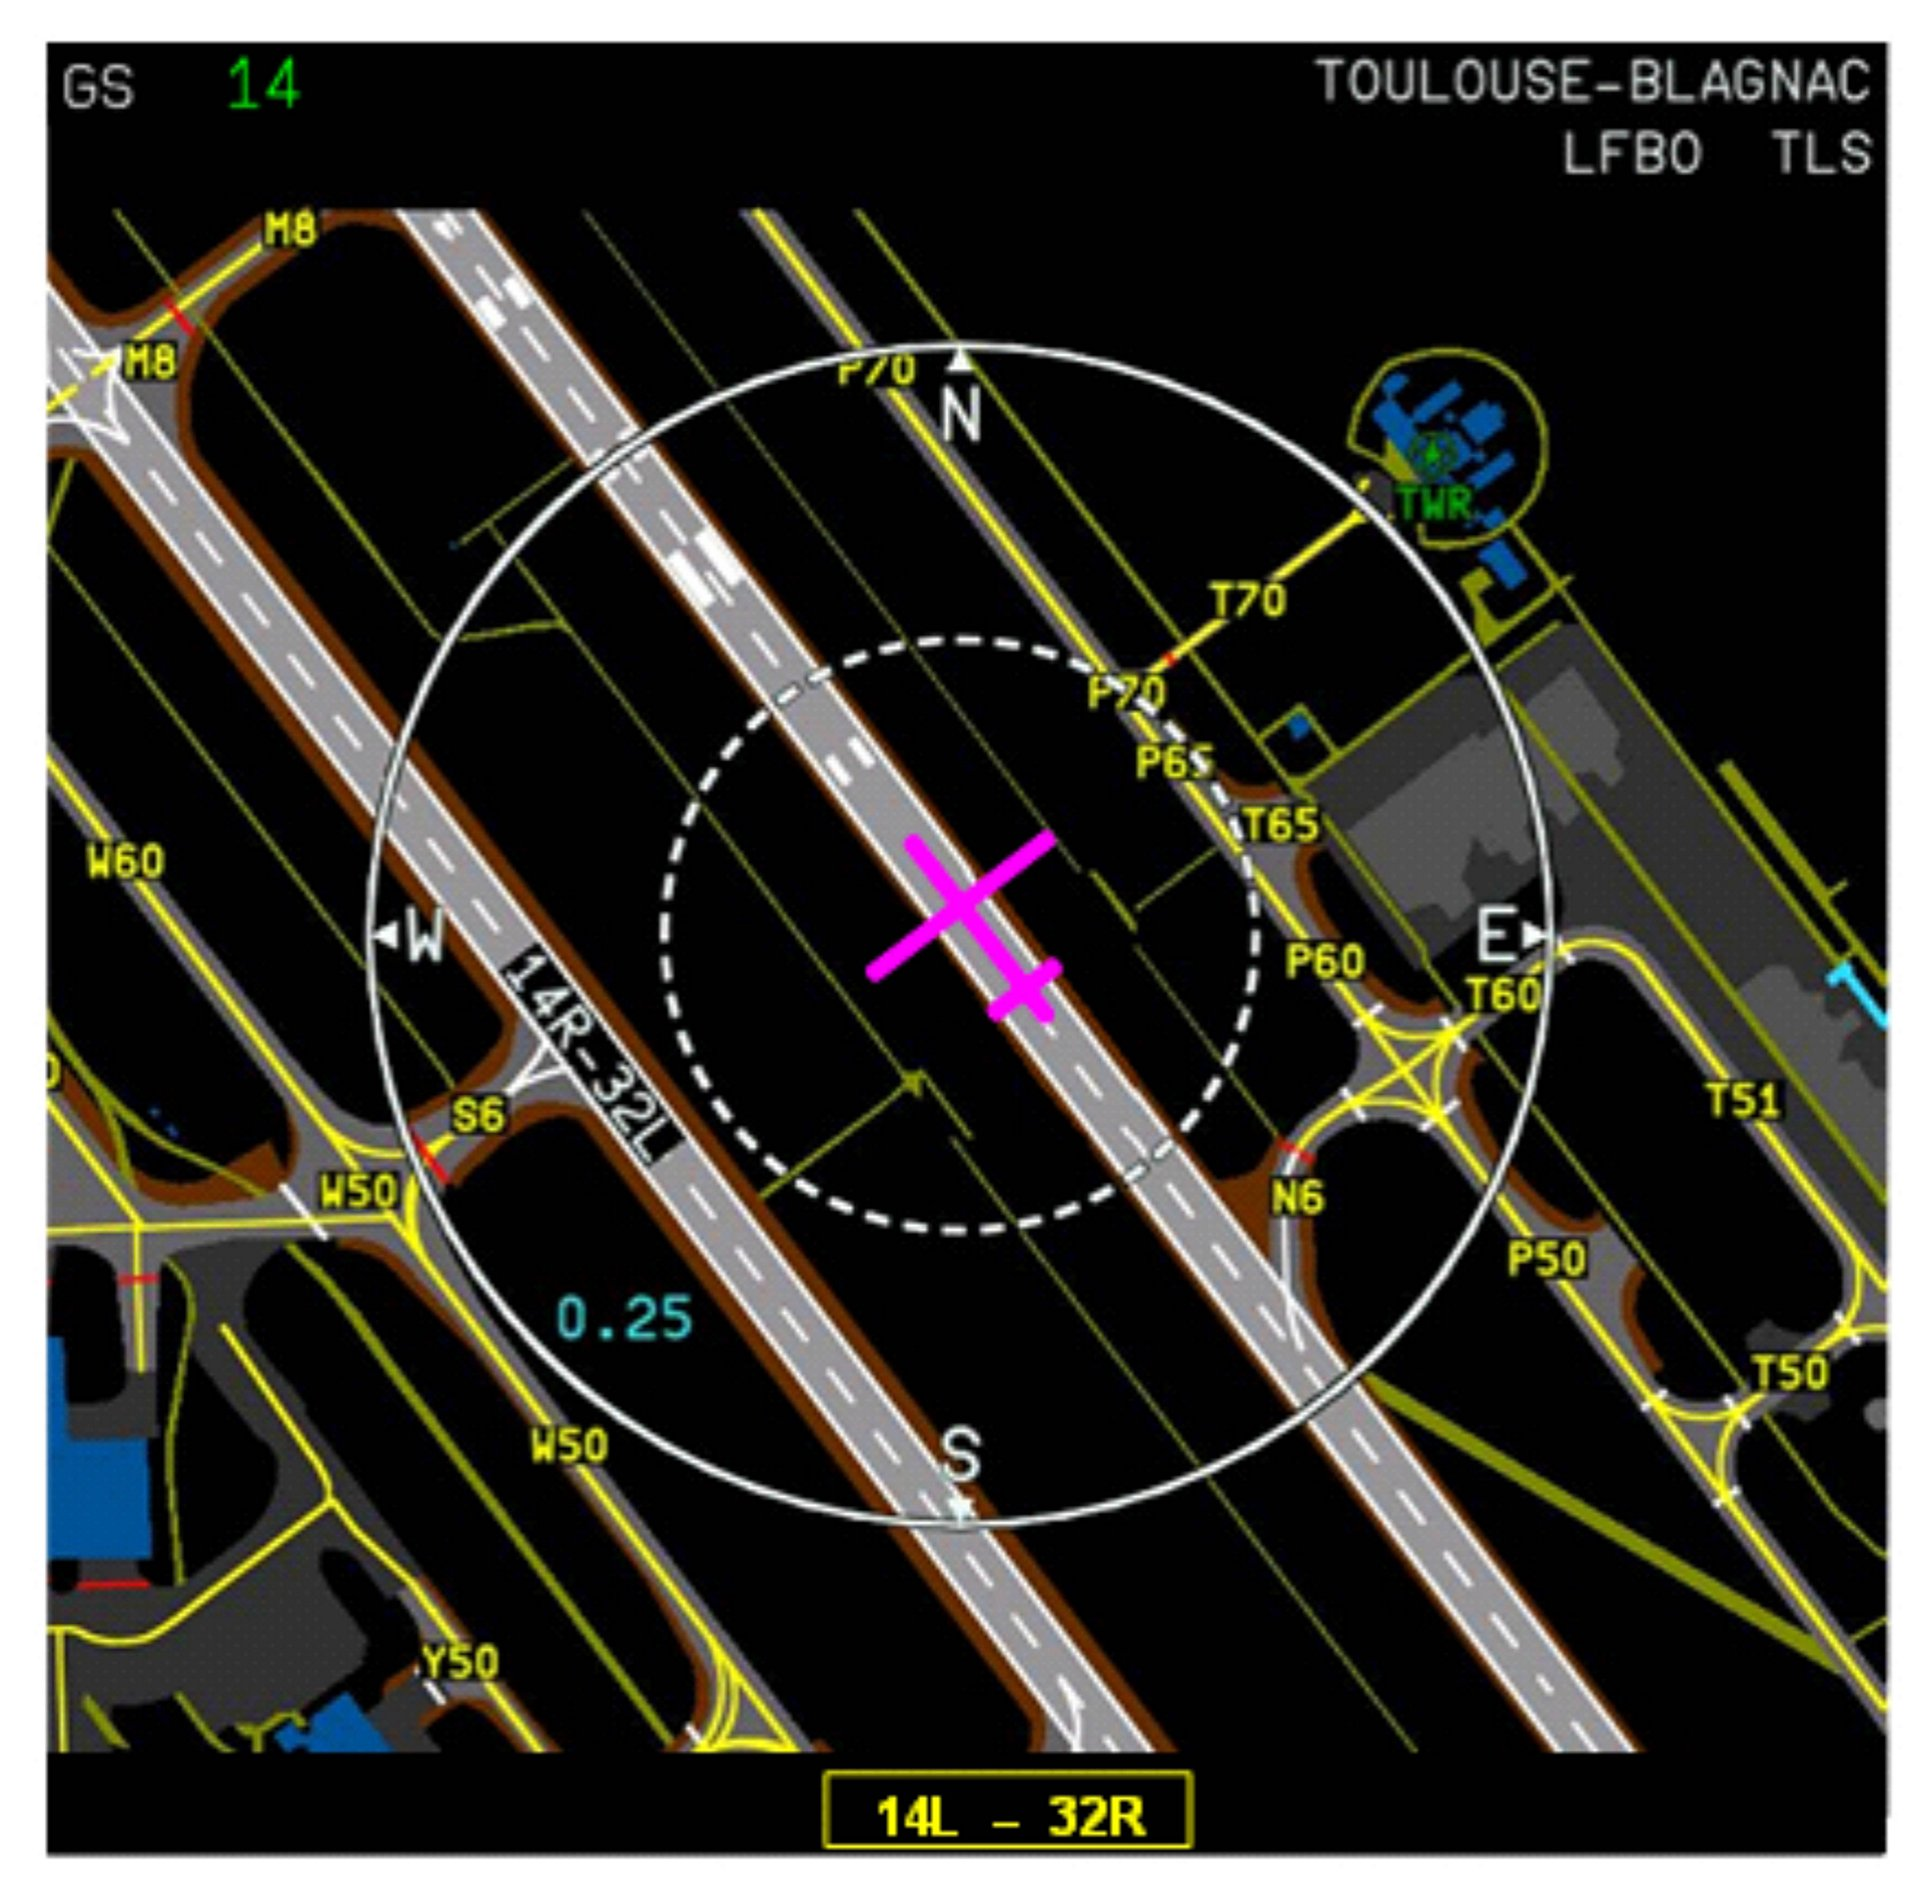 On-Board Airport Navigation System (OANS) debuts on A320 and A330